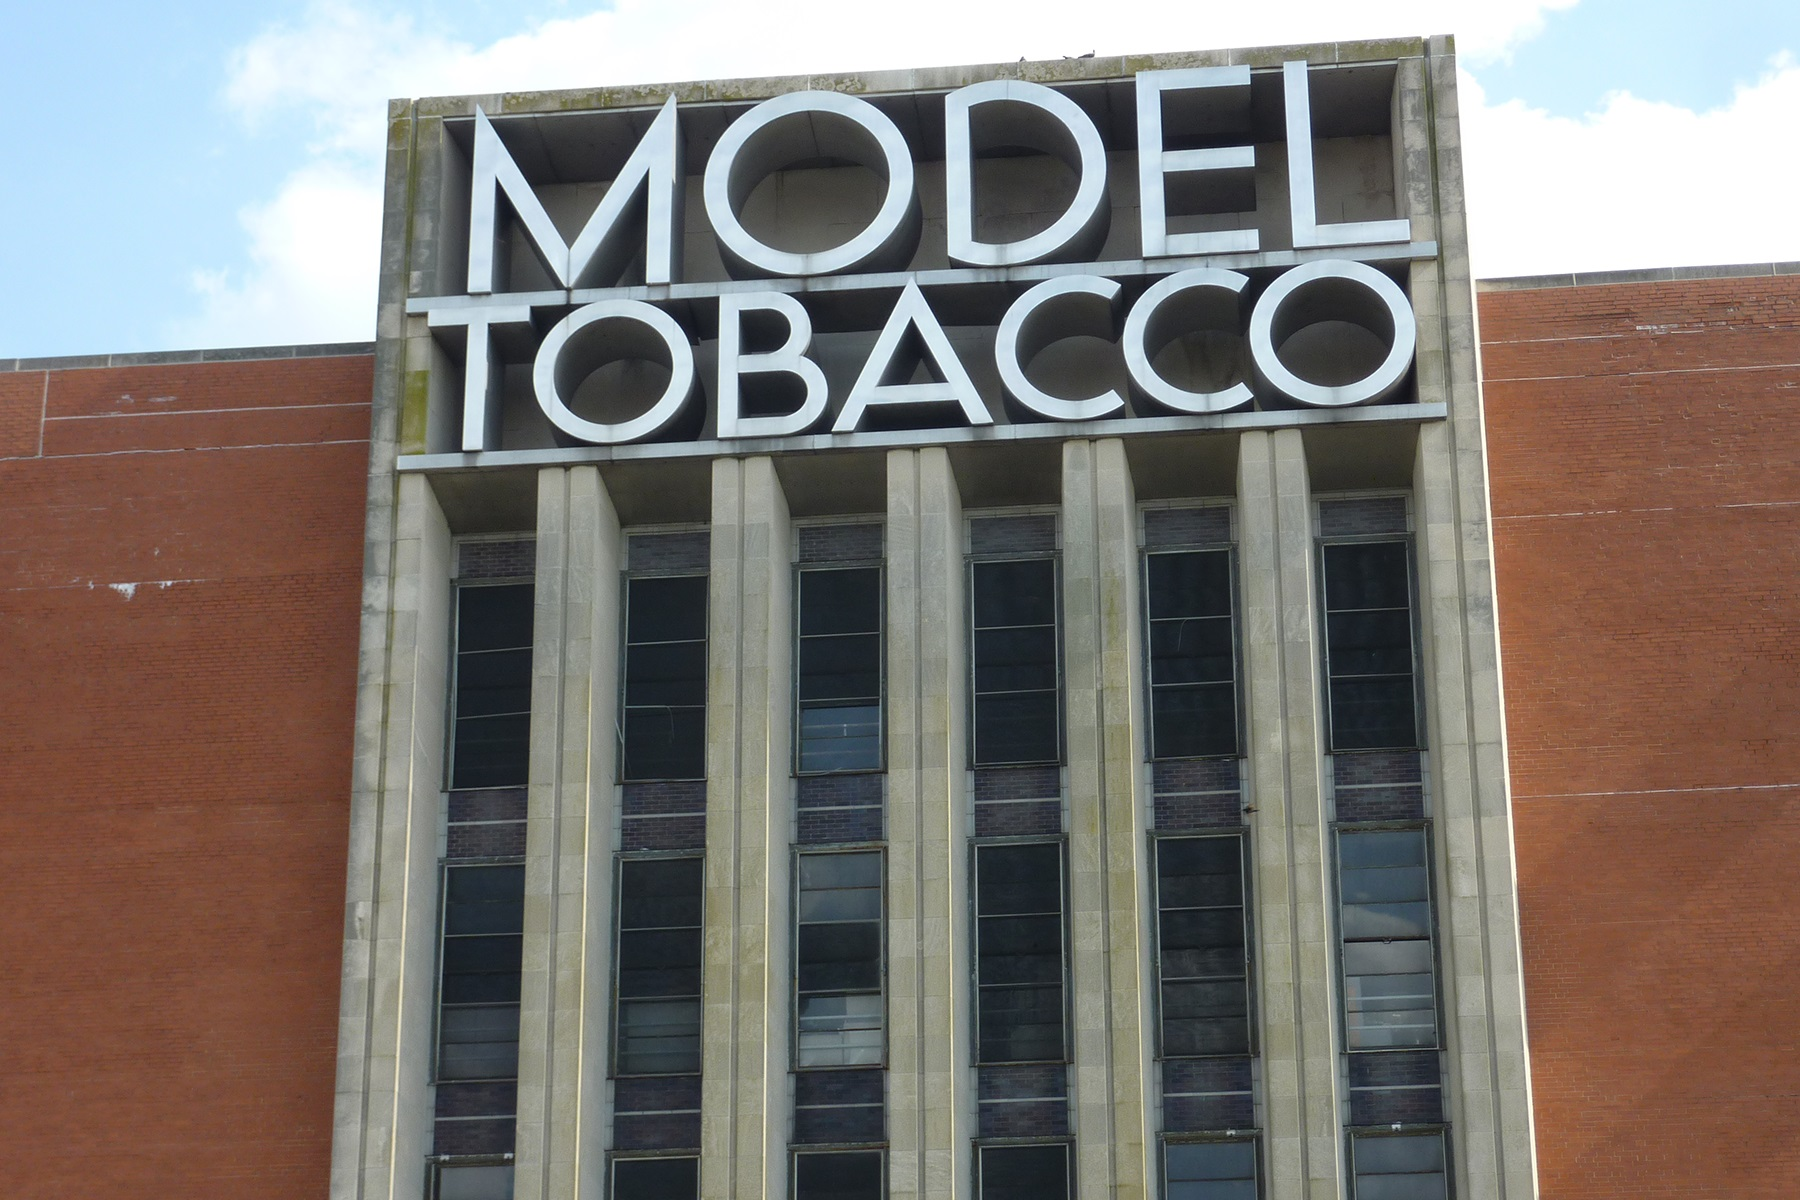 Model Tobacco Company